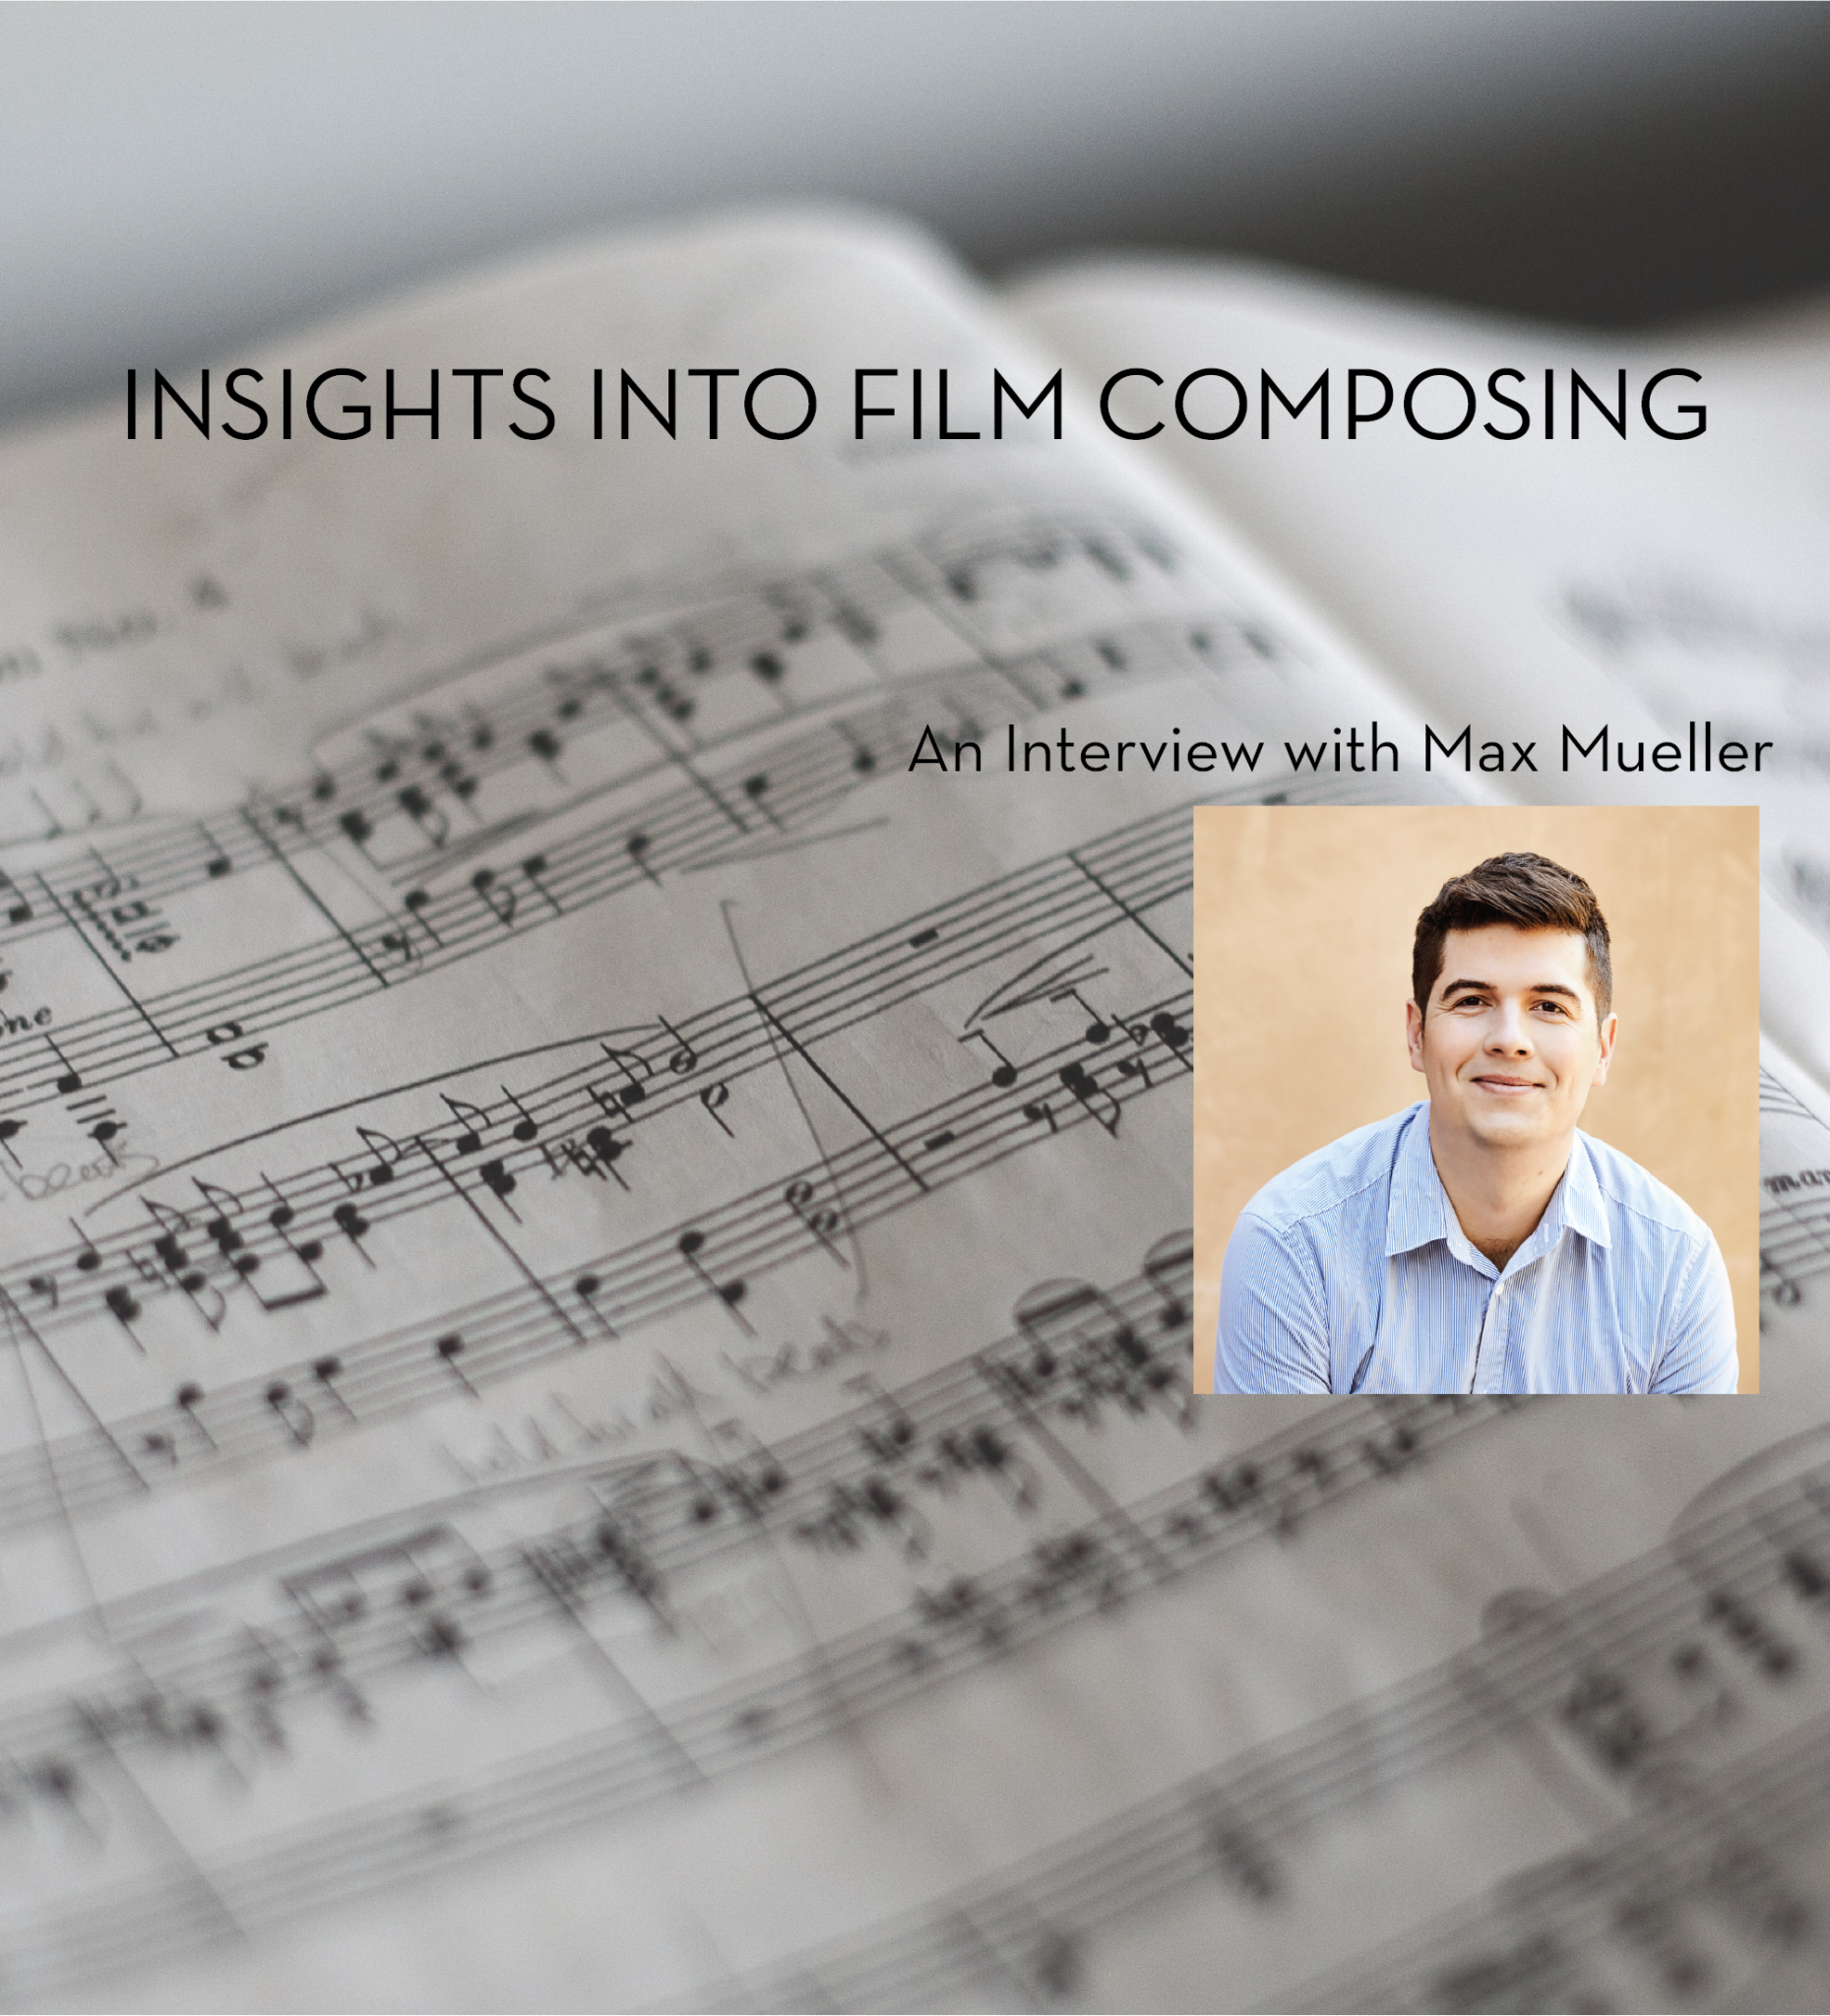 Insights into Film Composing